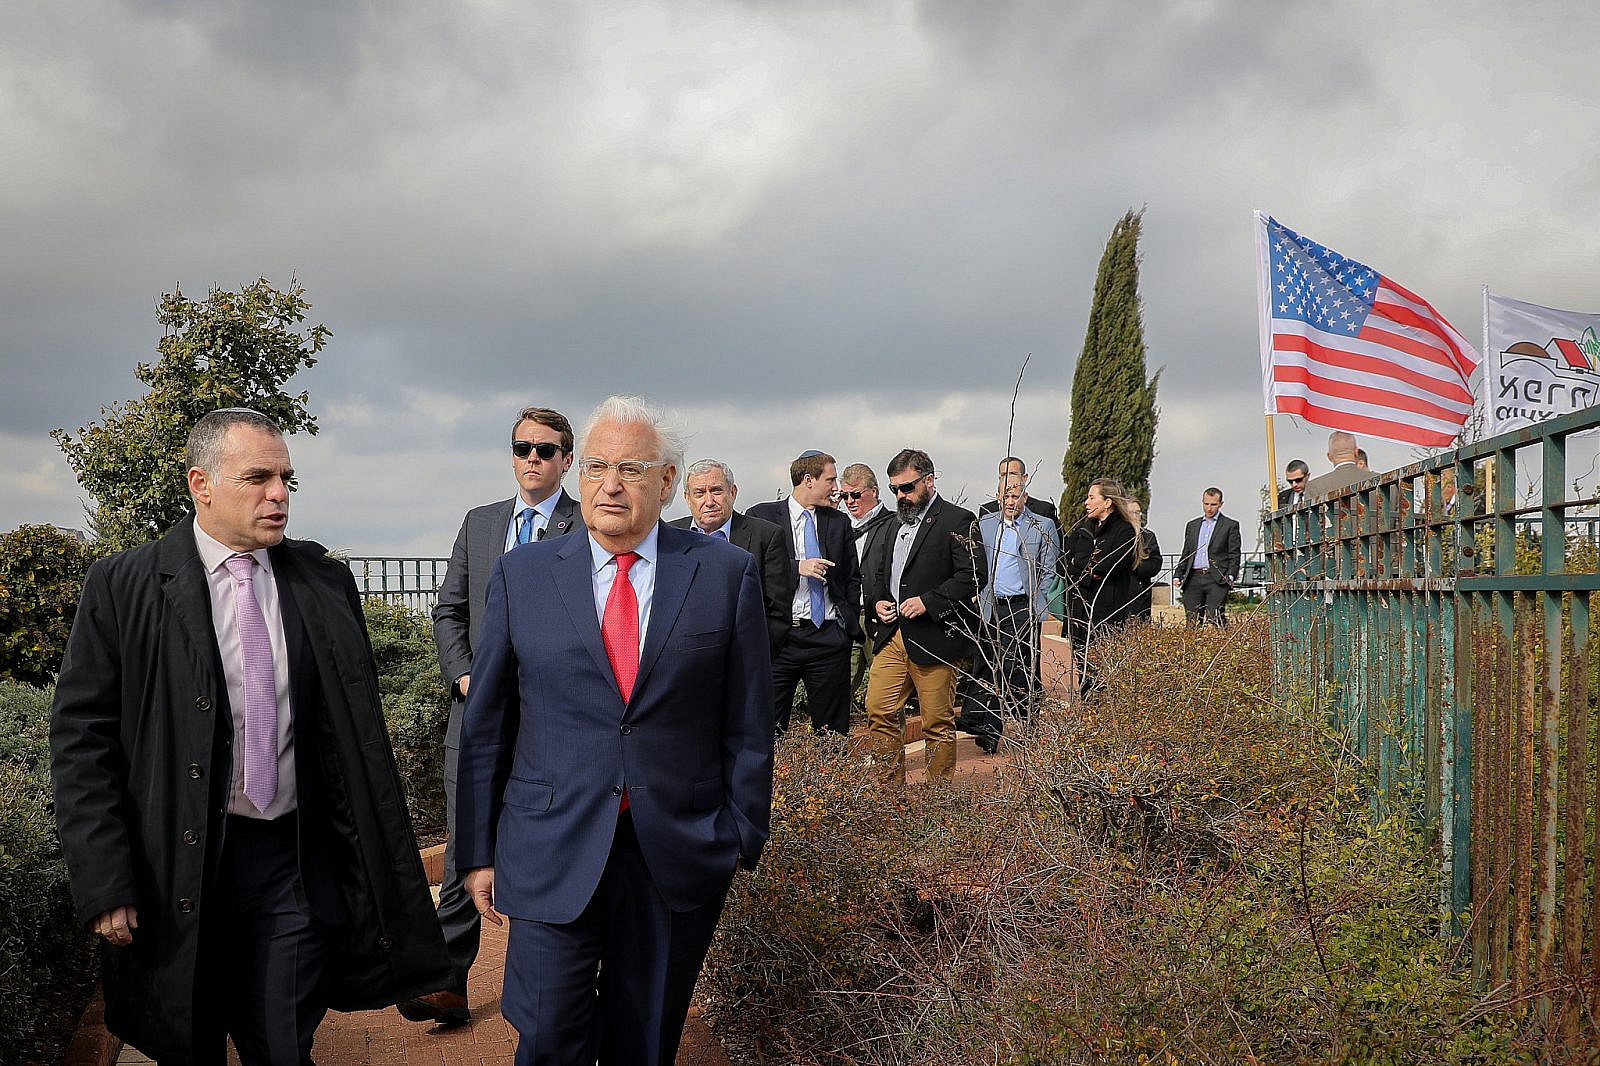 U.S. ambassador to Israel David Friedman, with the Head of Efrat regional council Oded Revivi and other heads of local councils in Judea and Samaria (West Bank), during a visit to the settlement of Efrat, in Gush Etzion, February 20, 2020. (Gershon Elinson/Flash90)